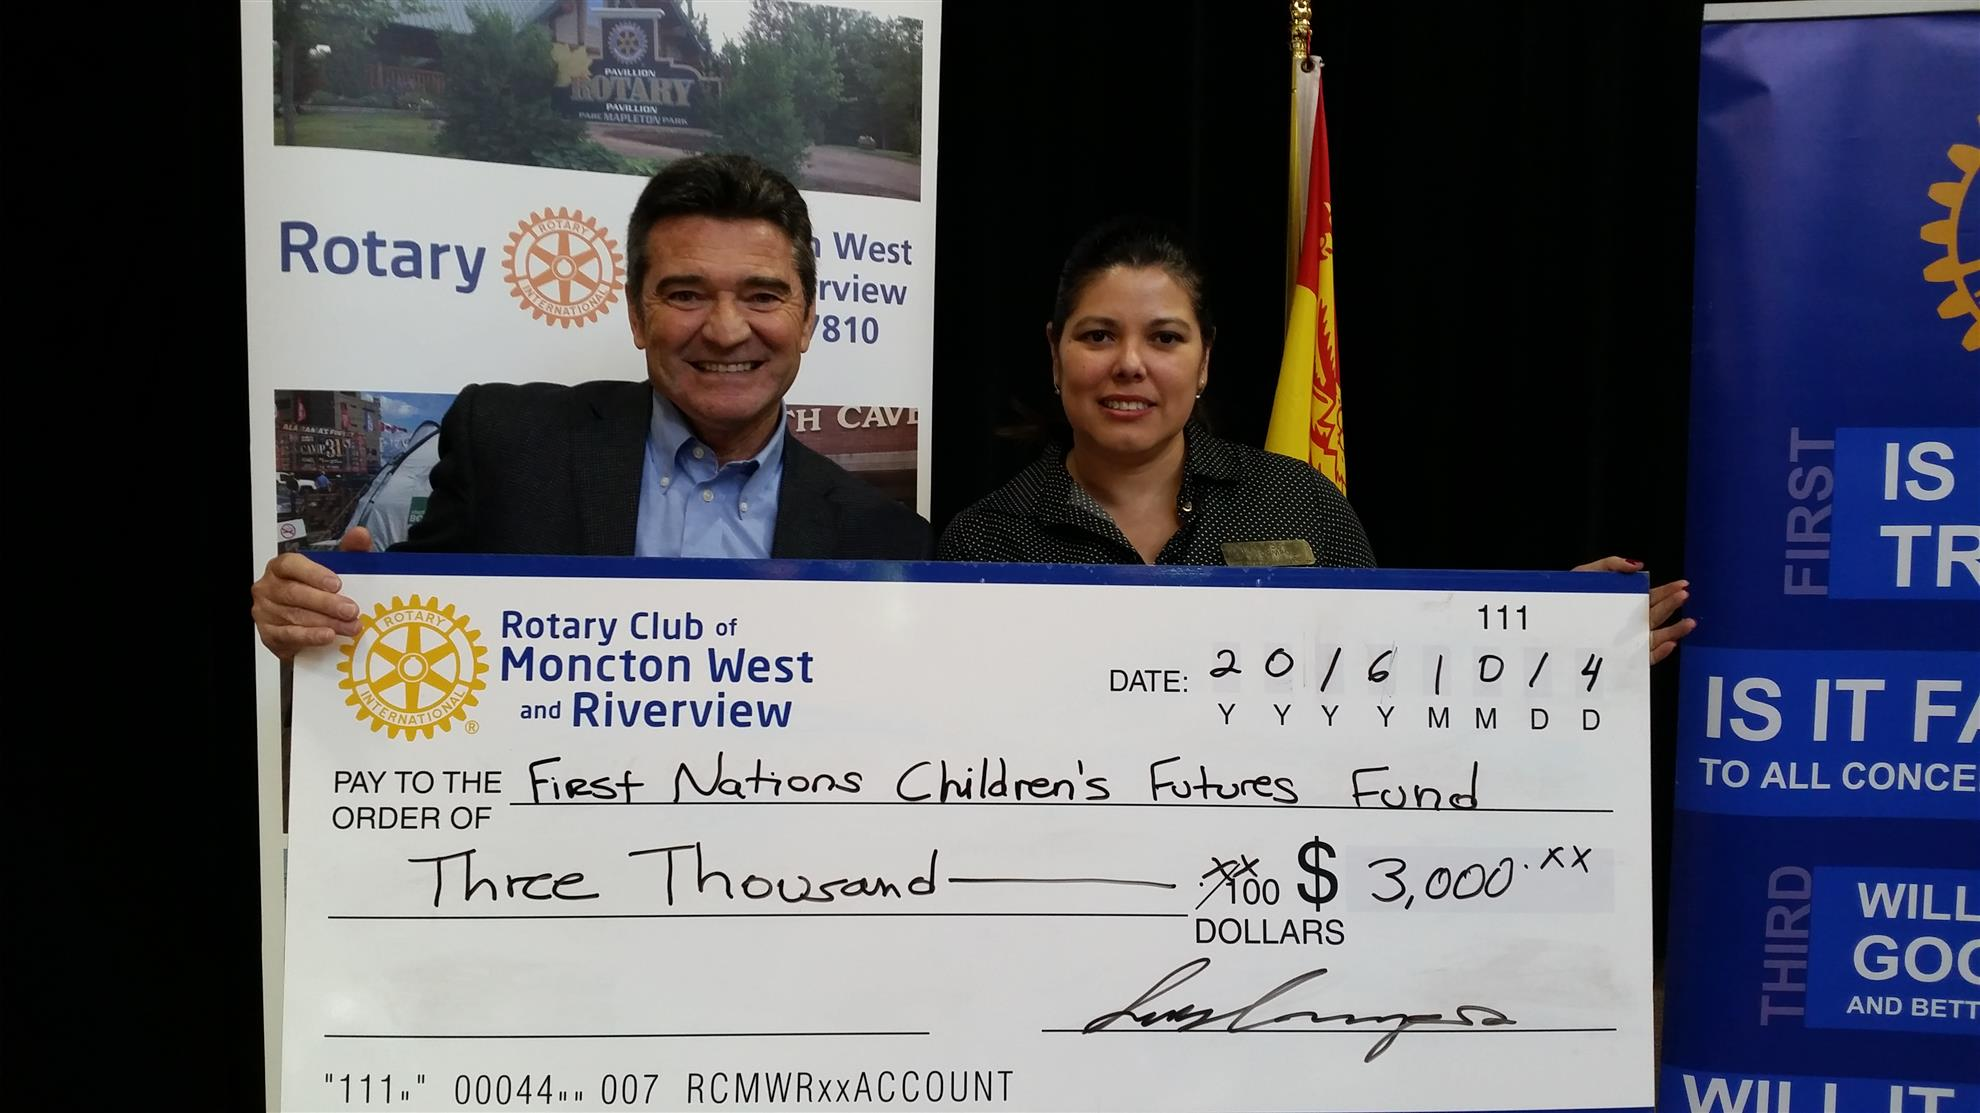 First Nations Childrens Futures Fund